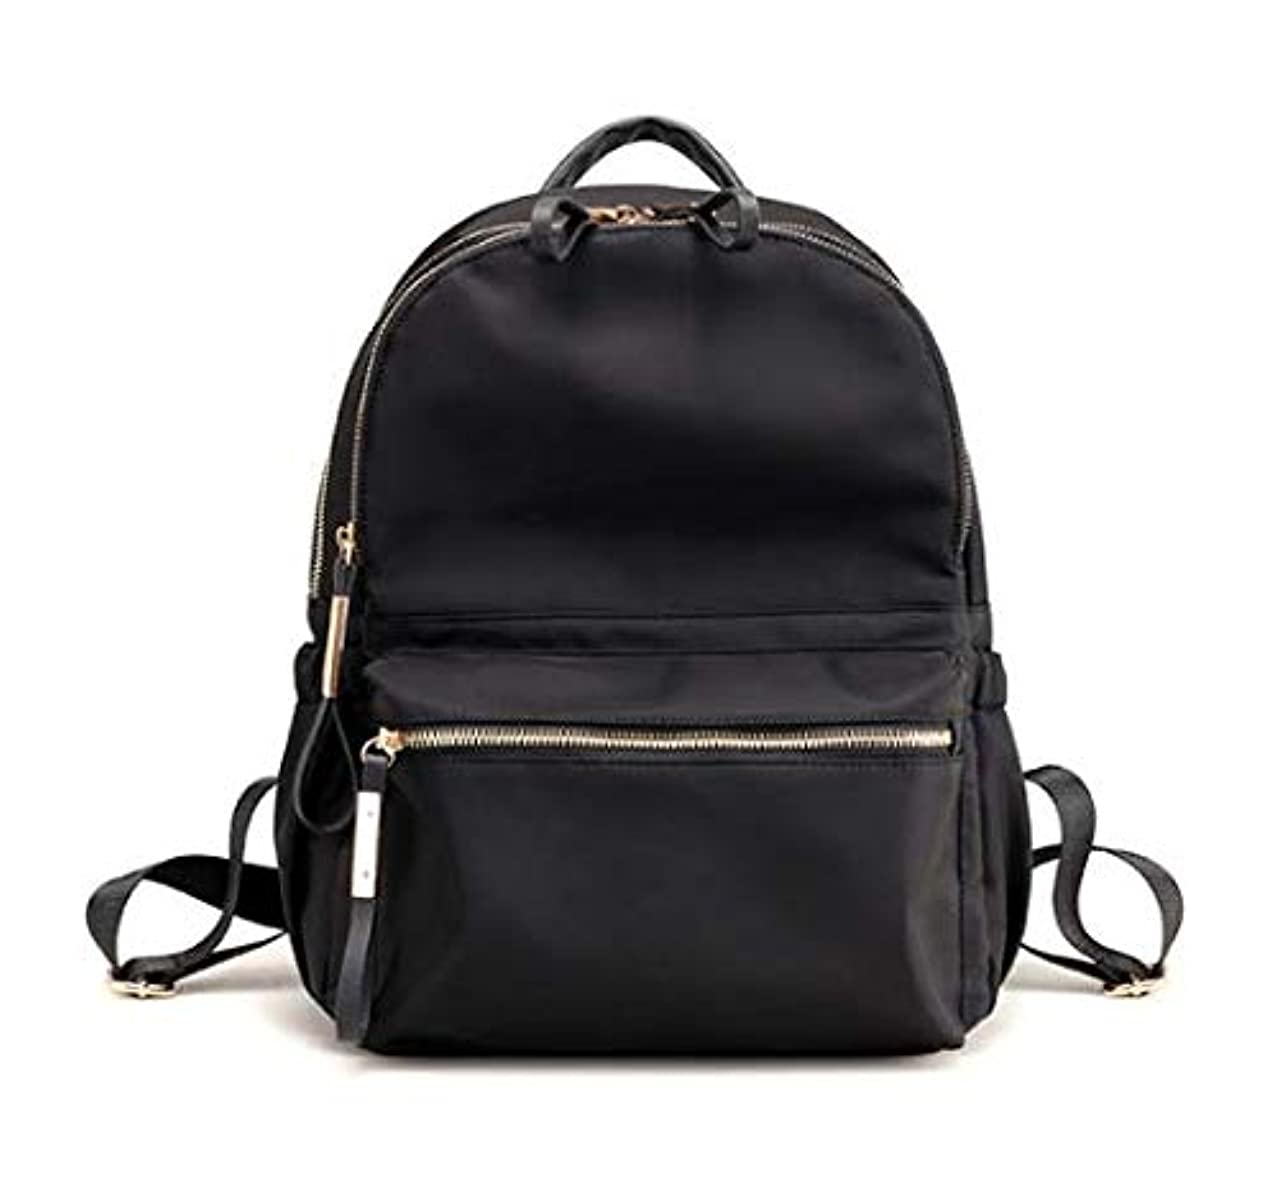 Bjzxz Backpack Ladies Men's Casual Bag Popular Lightweight Rucks Daypack Fashionable Commuter School Business etc.